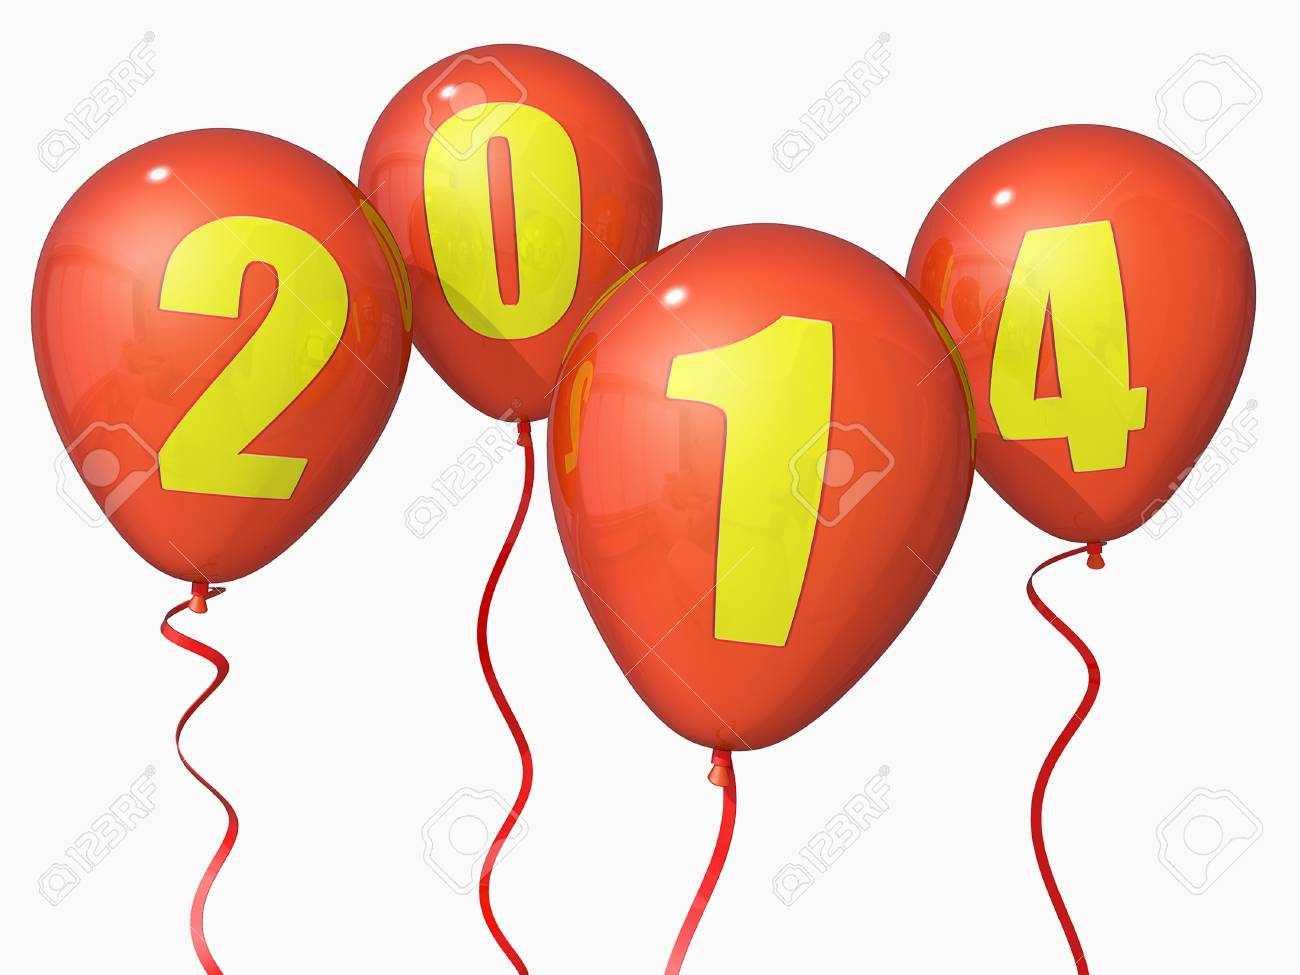 Balloons with 2014 on them. Stock Photo - 17299277